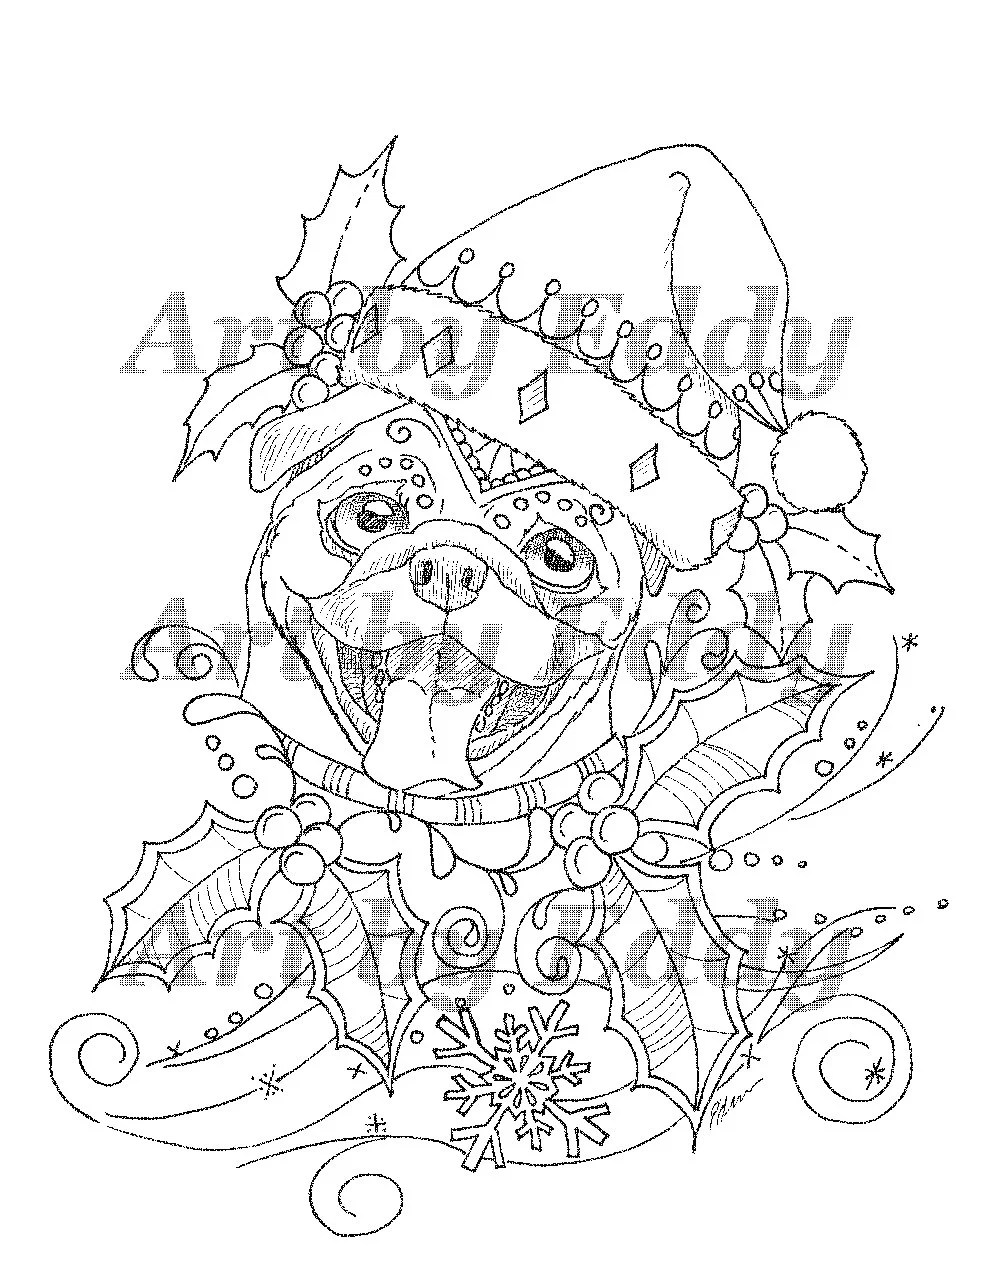 Art of Pug Coloring Book Volume No. 1 Physical Book